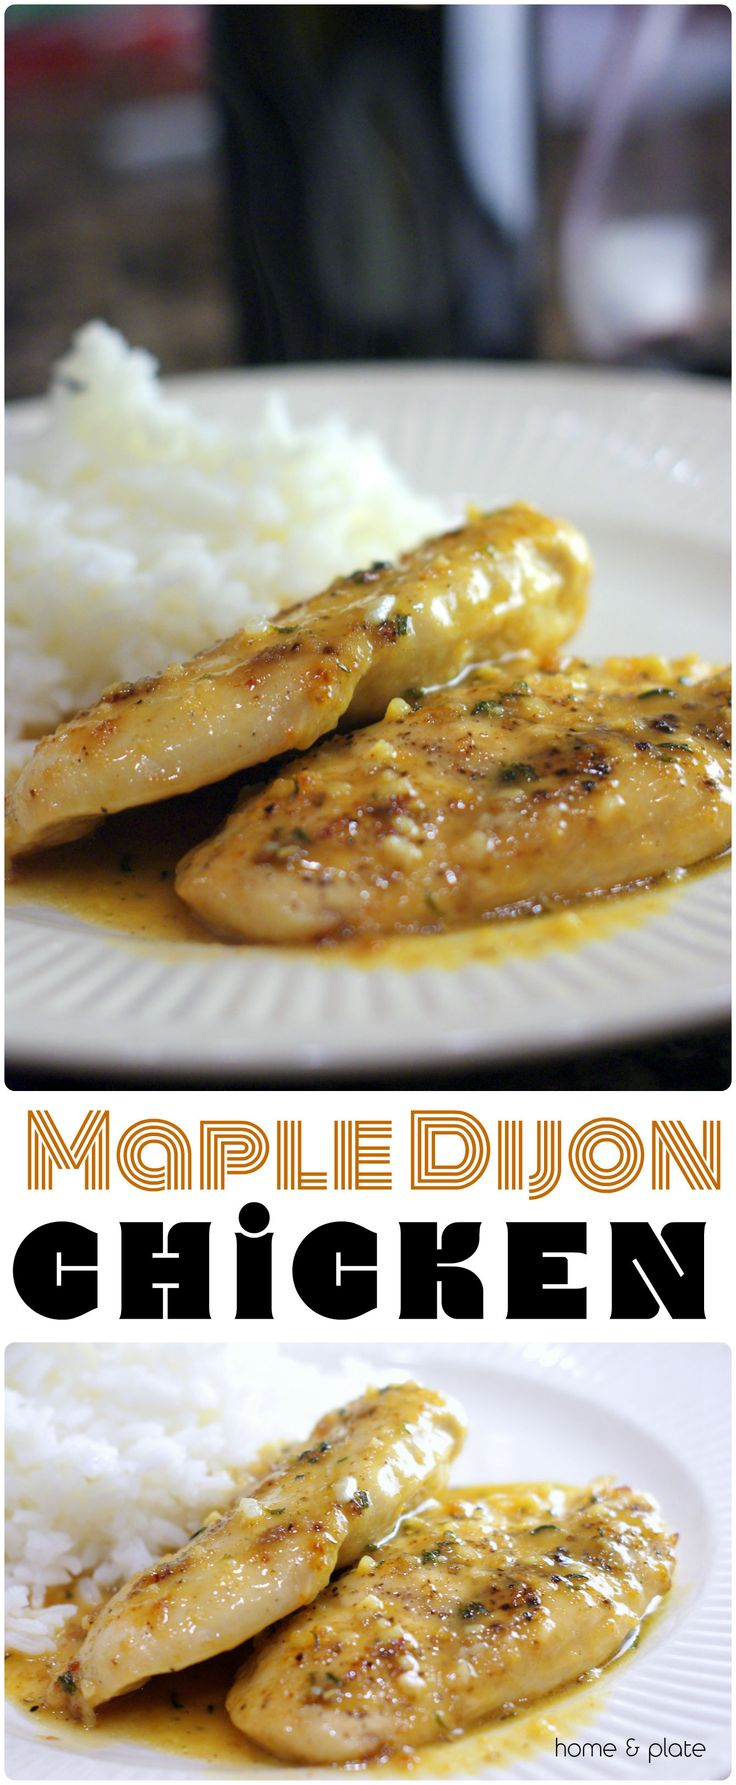 Maple Dijon Chicken combines the sweet flavor of maple syrup with tangy Dijon mustard to create a chicken dish that's like nothing you've ever tasted.